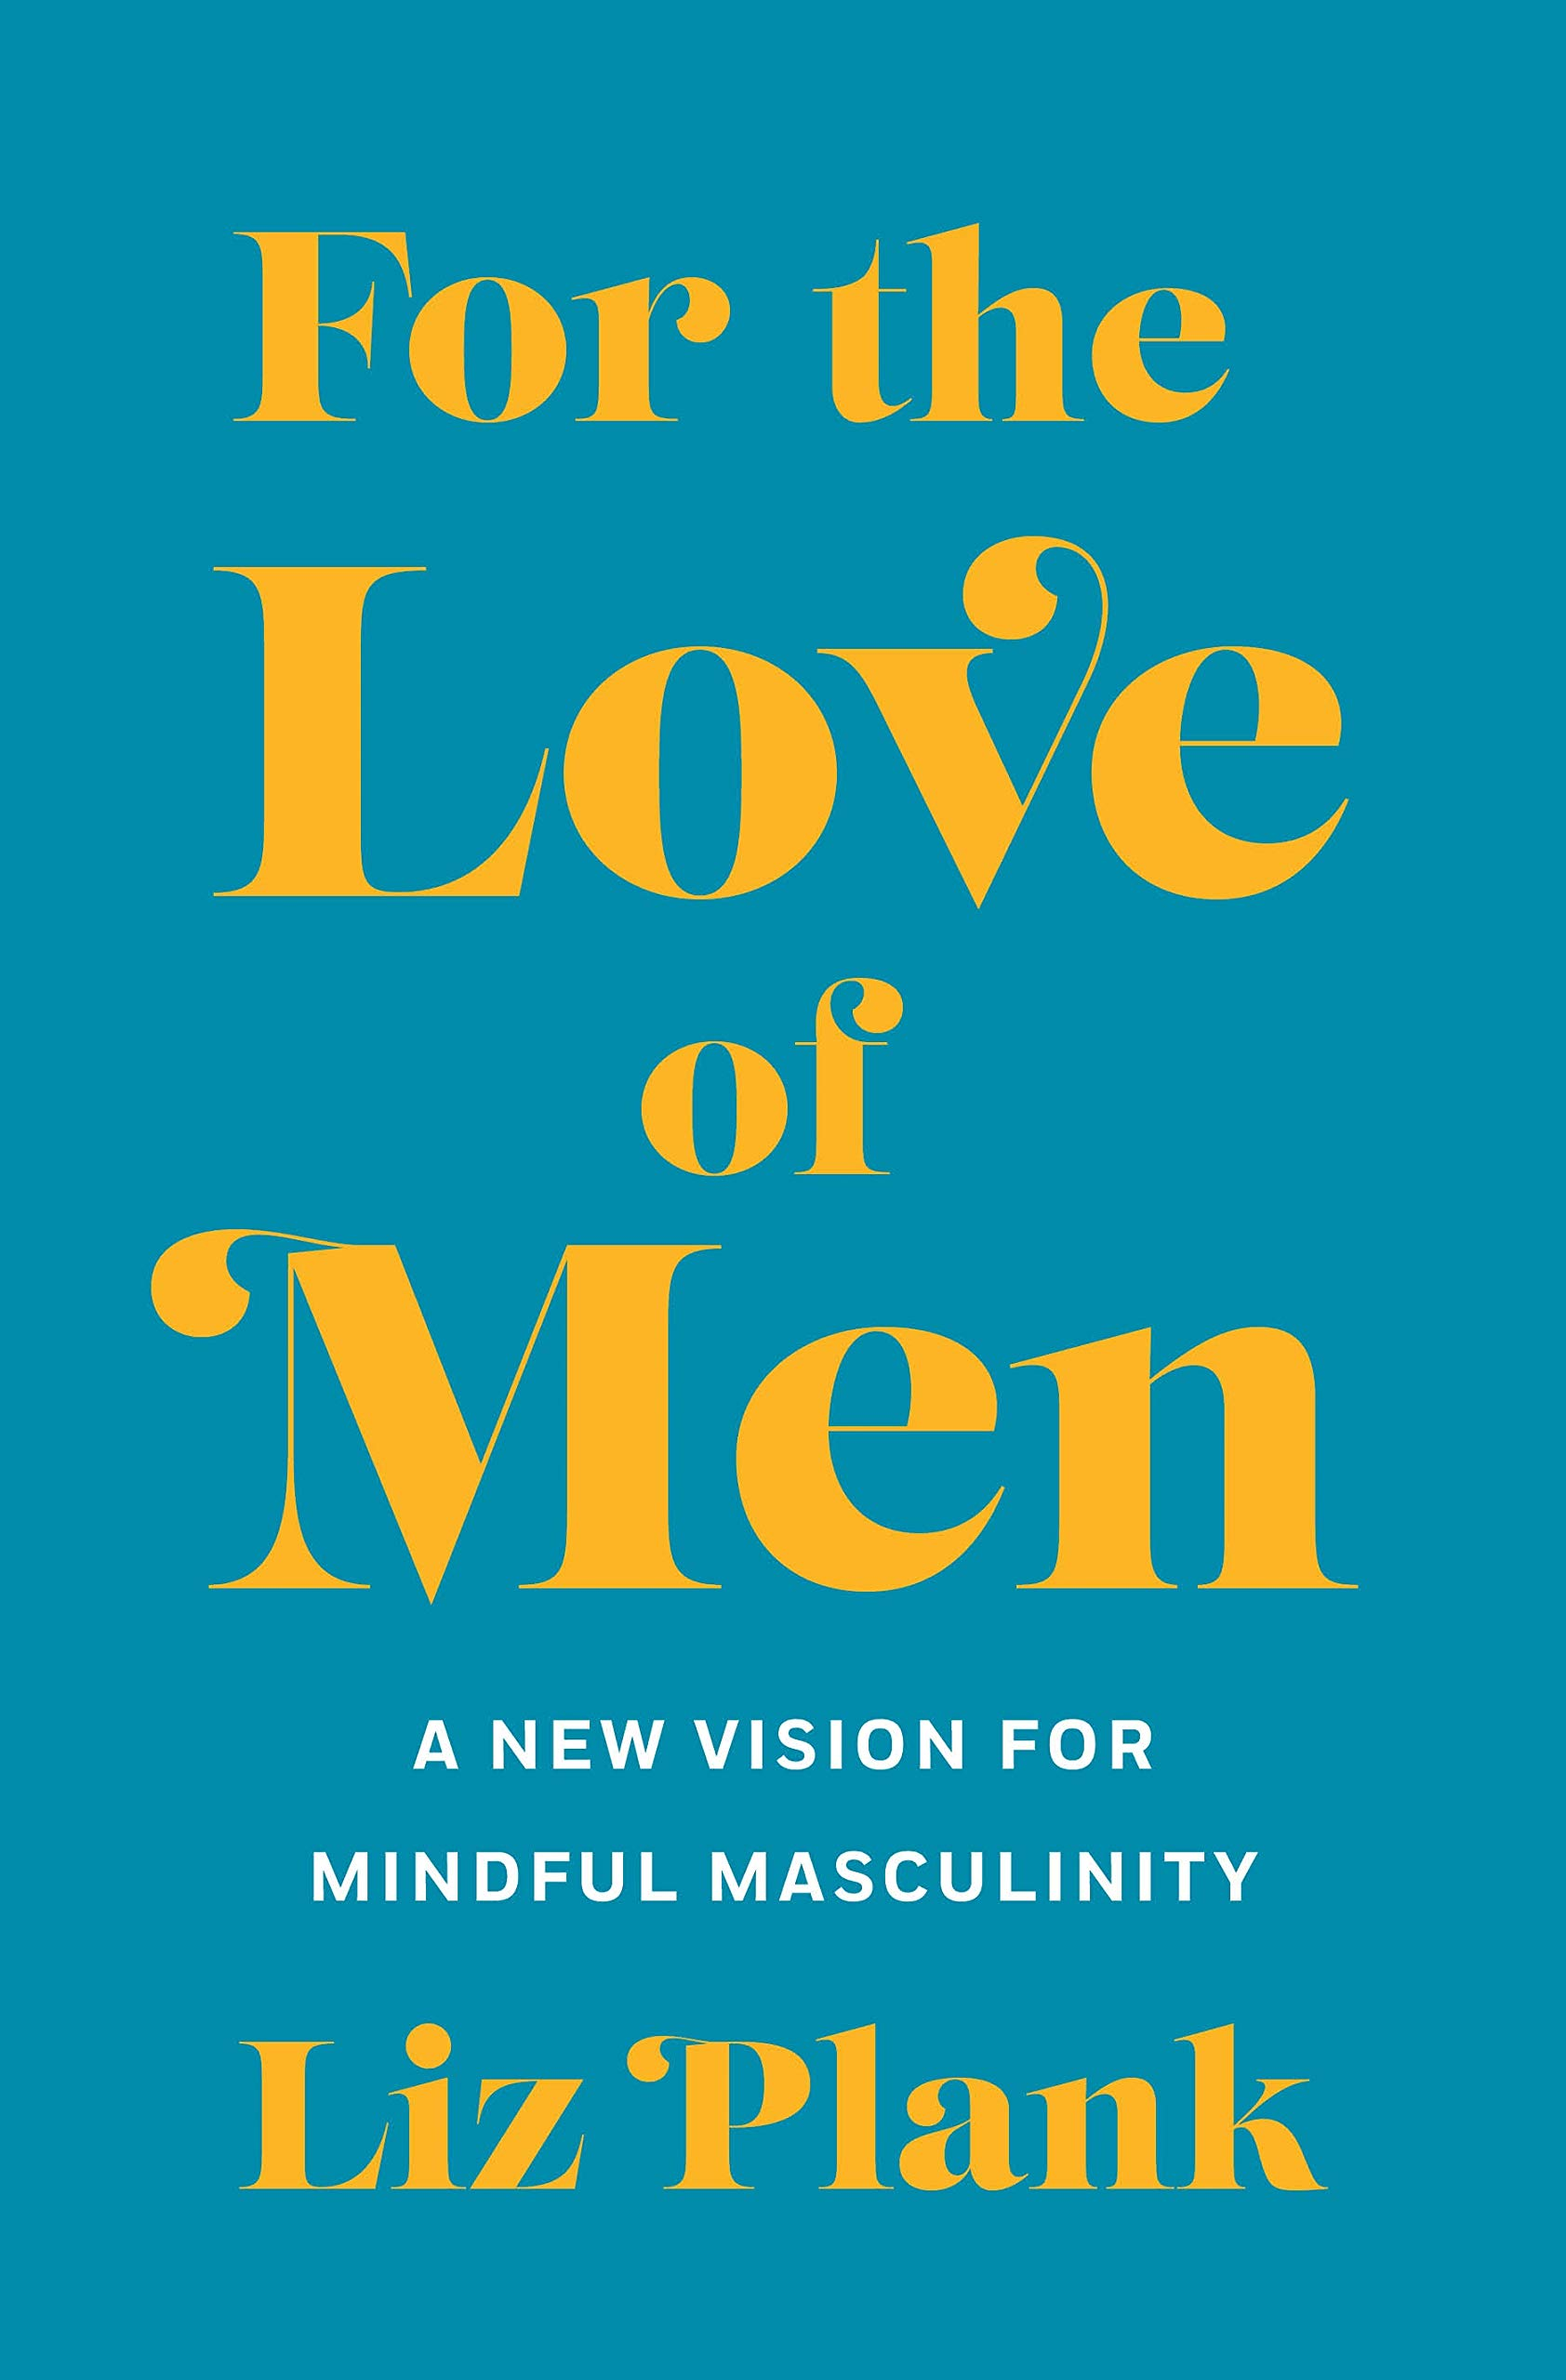 For the Love of Men: A New Vision for Mindful Masculinity by St. Martin's Press